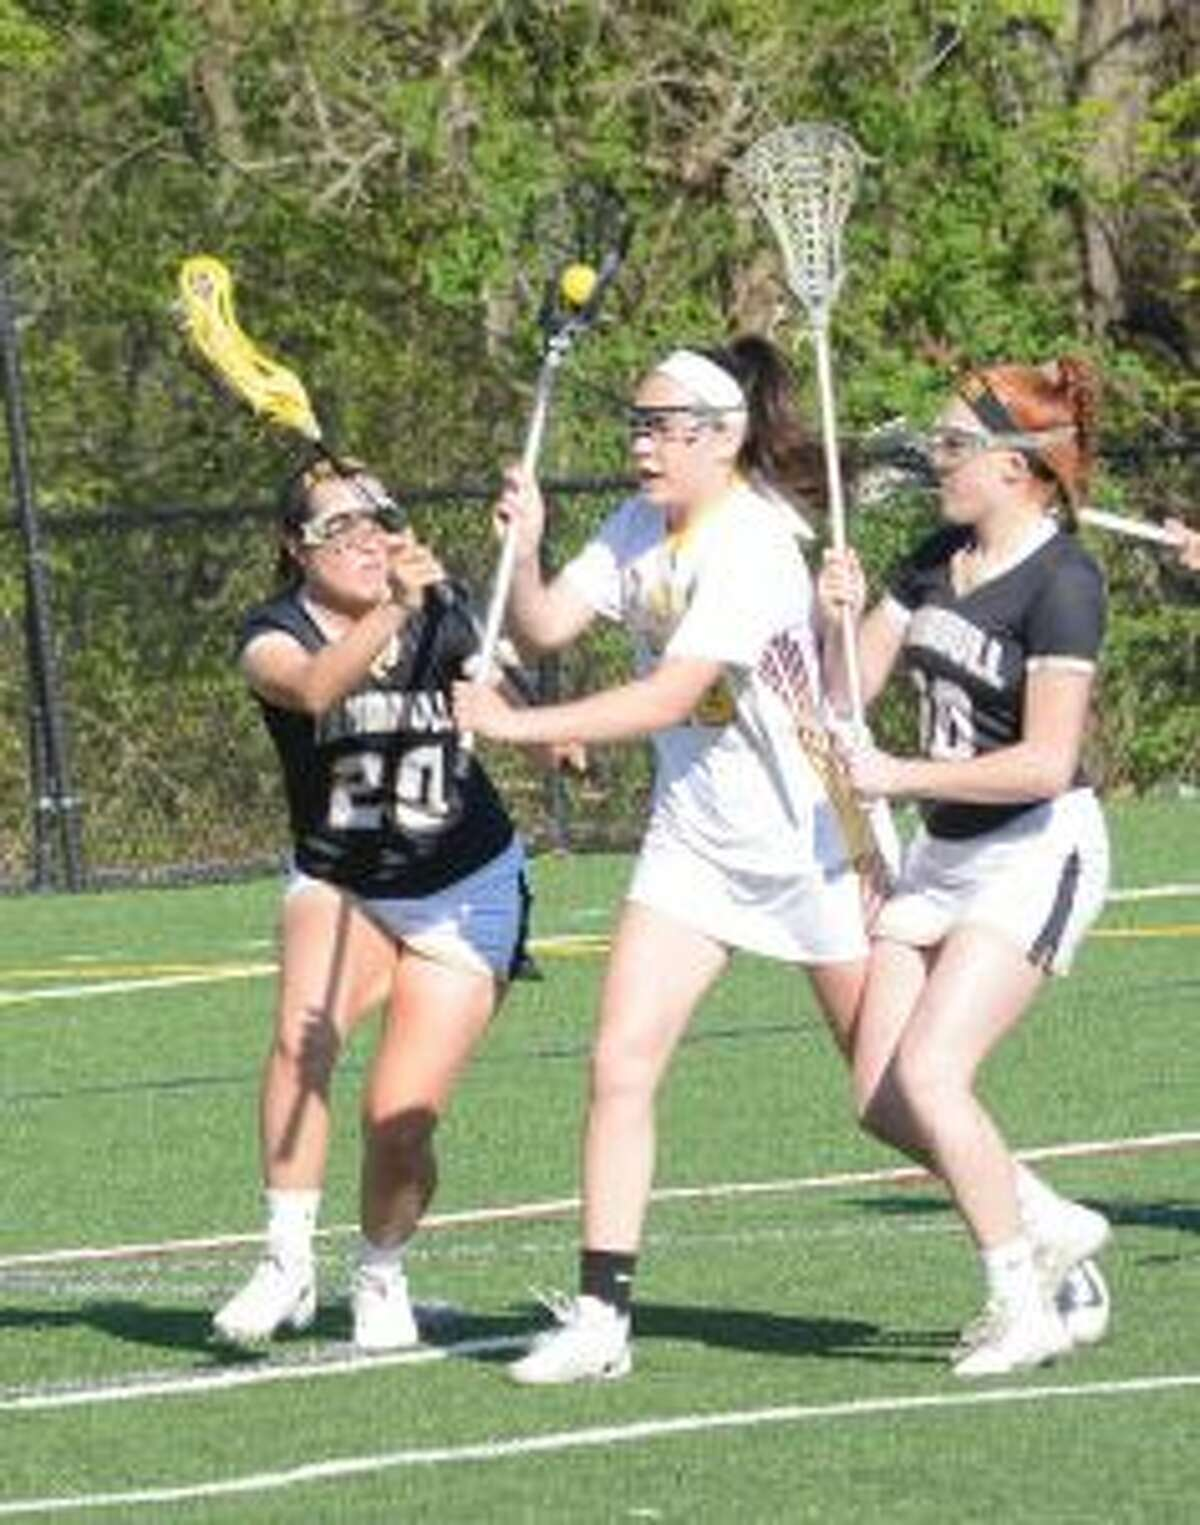 St. Joseph's Annie McNeil is flanked by Trumbull's Shaye Manton (20) and Callan Vaughn (10). - Andy Hutchison photos